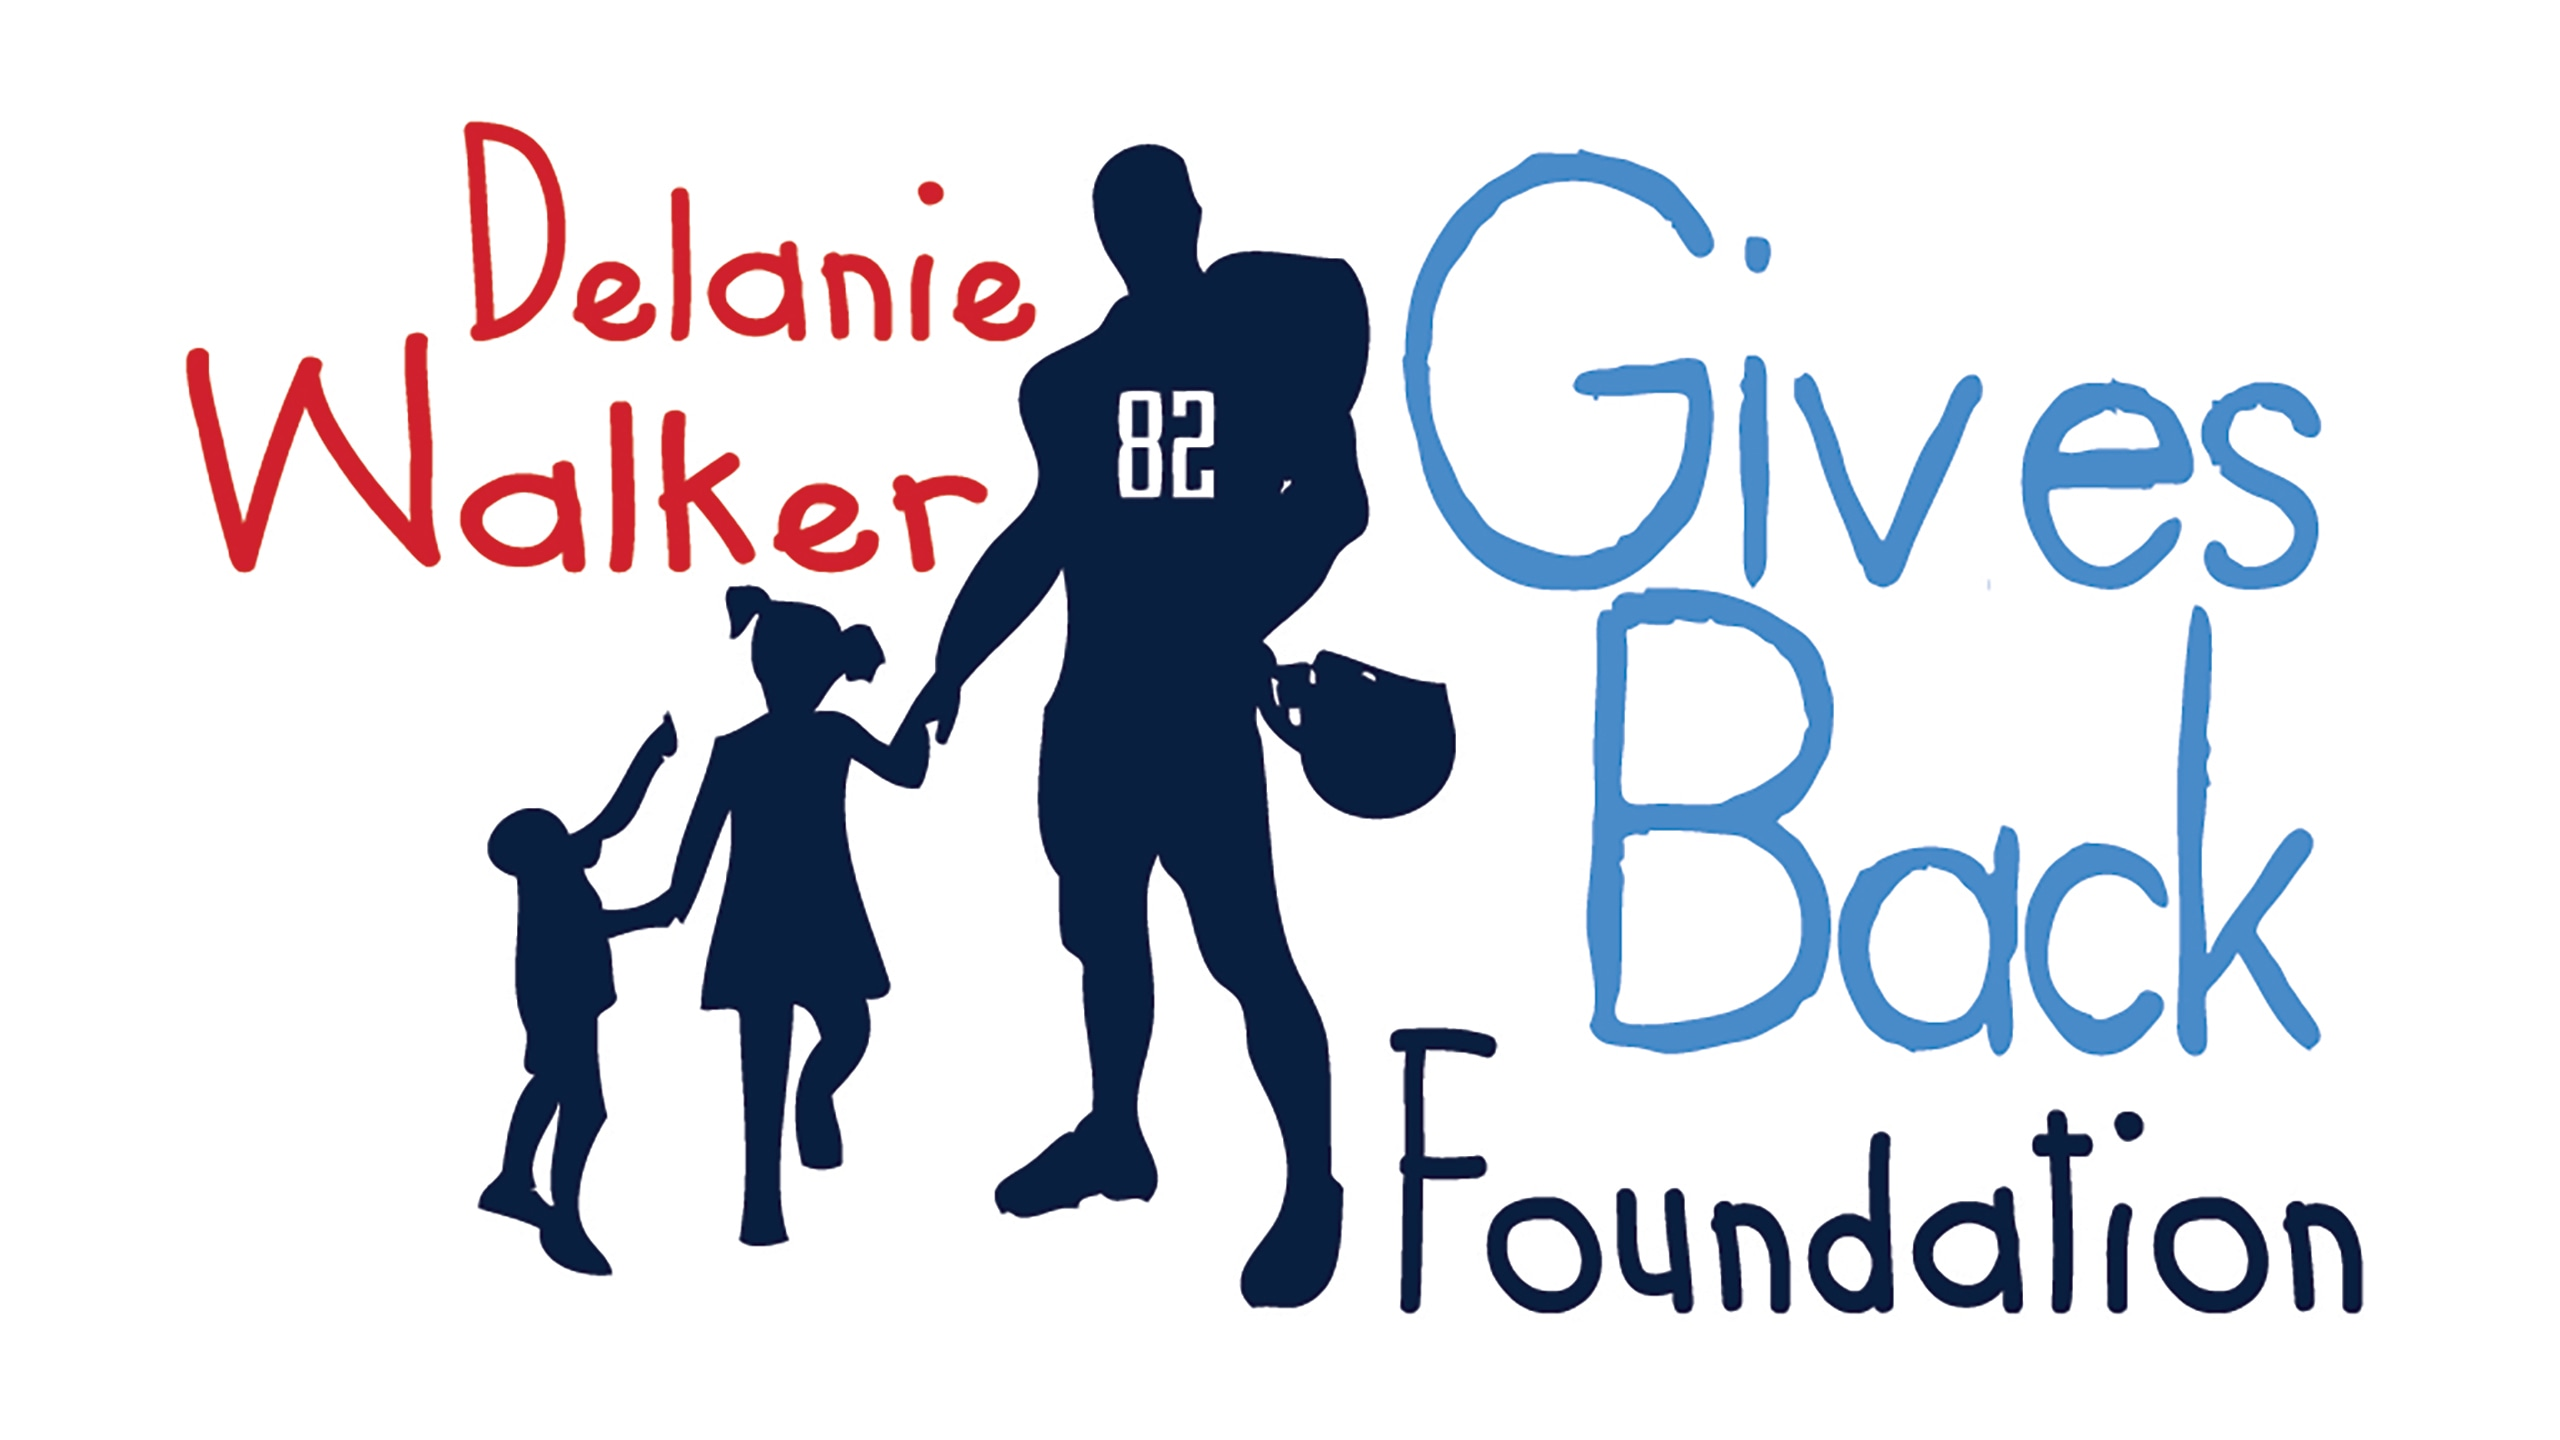 Delanie Walker - The Delanie Walker Gives Back Foundation